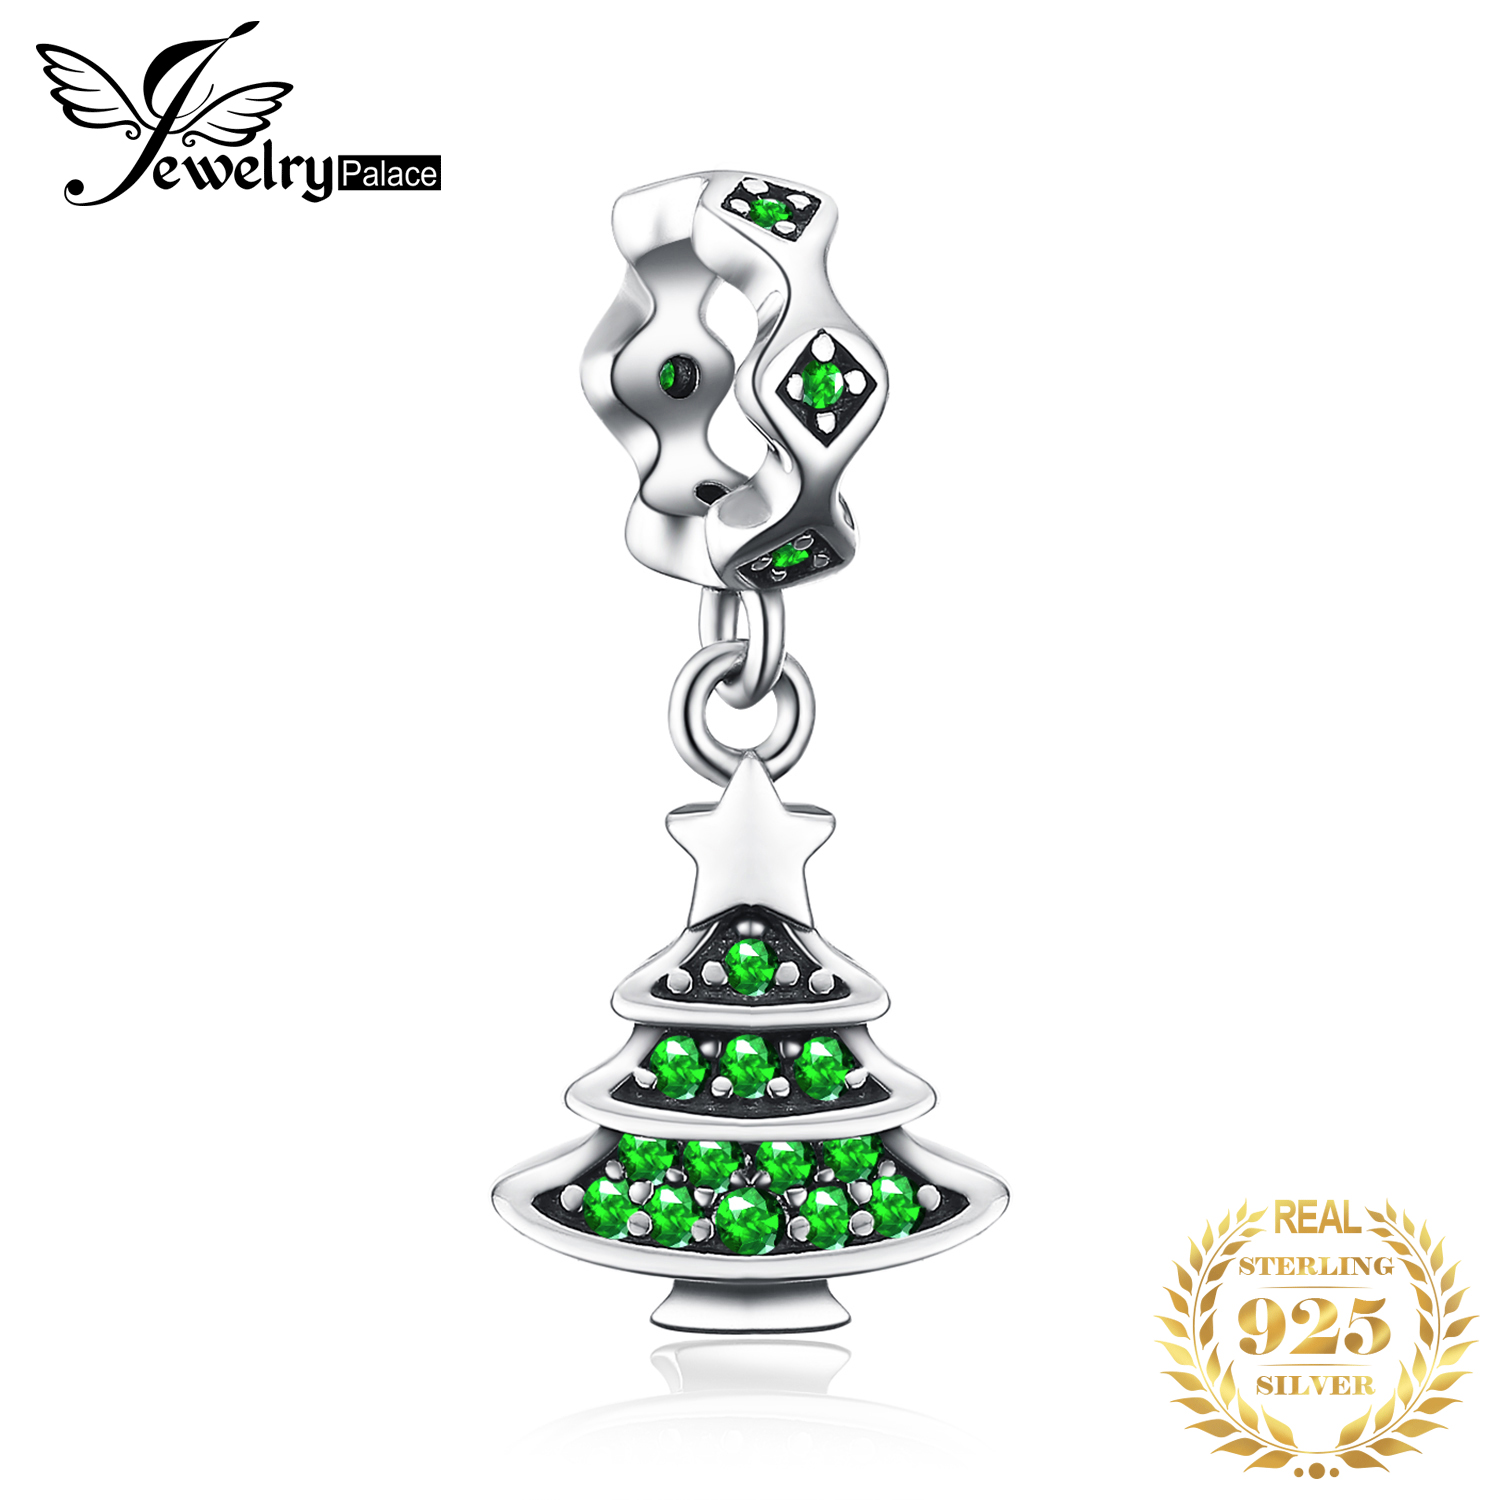 JewelryPalace Christmas Tree 925 Sterling Silver Bead Charms Silver 925 Original For Bracelet Silver 925 Original Jewelry Making